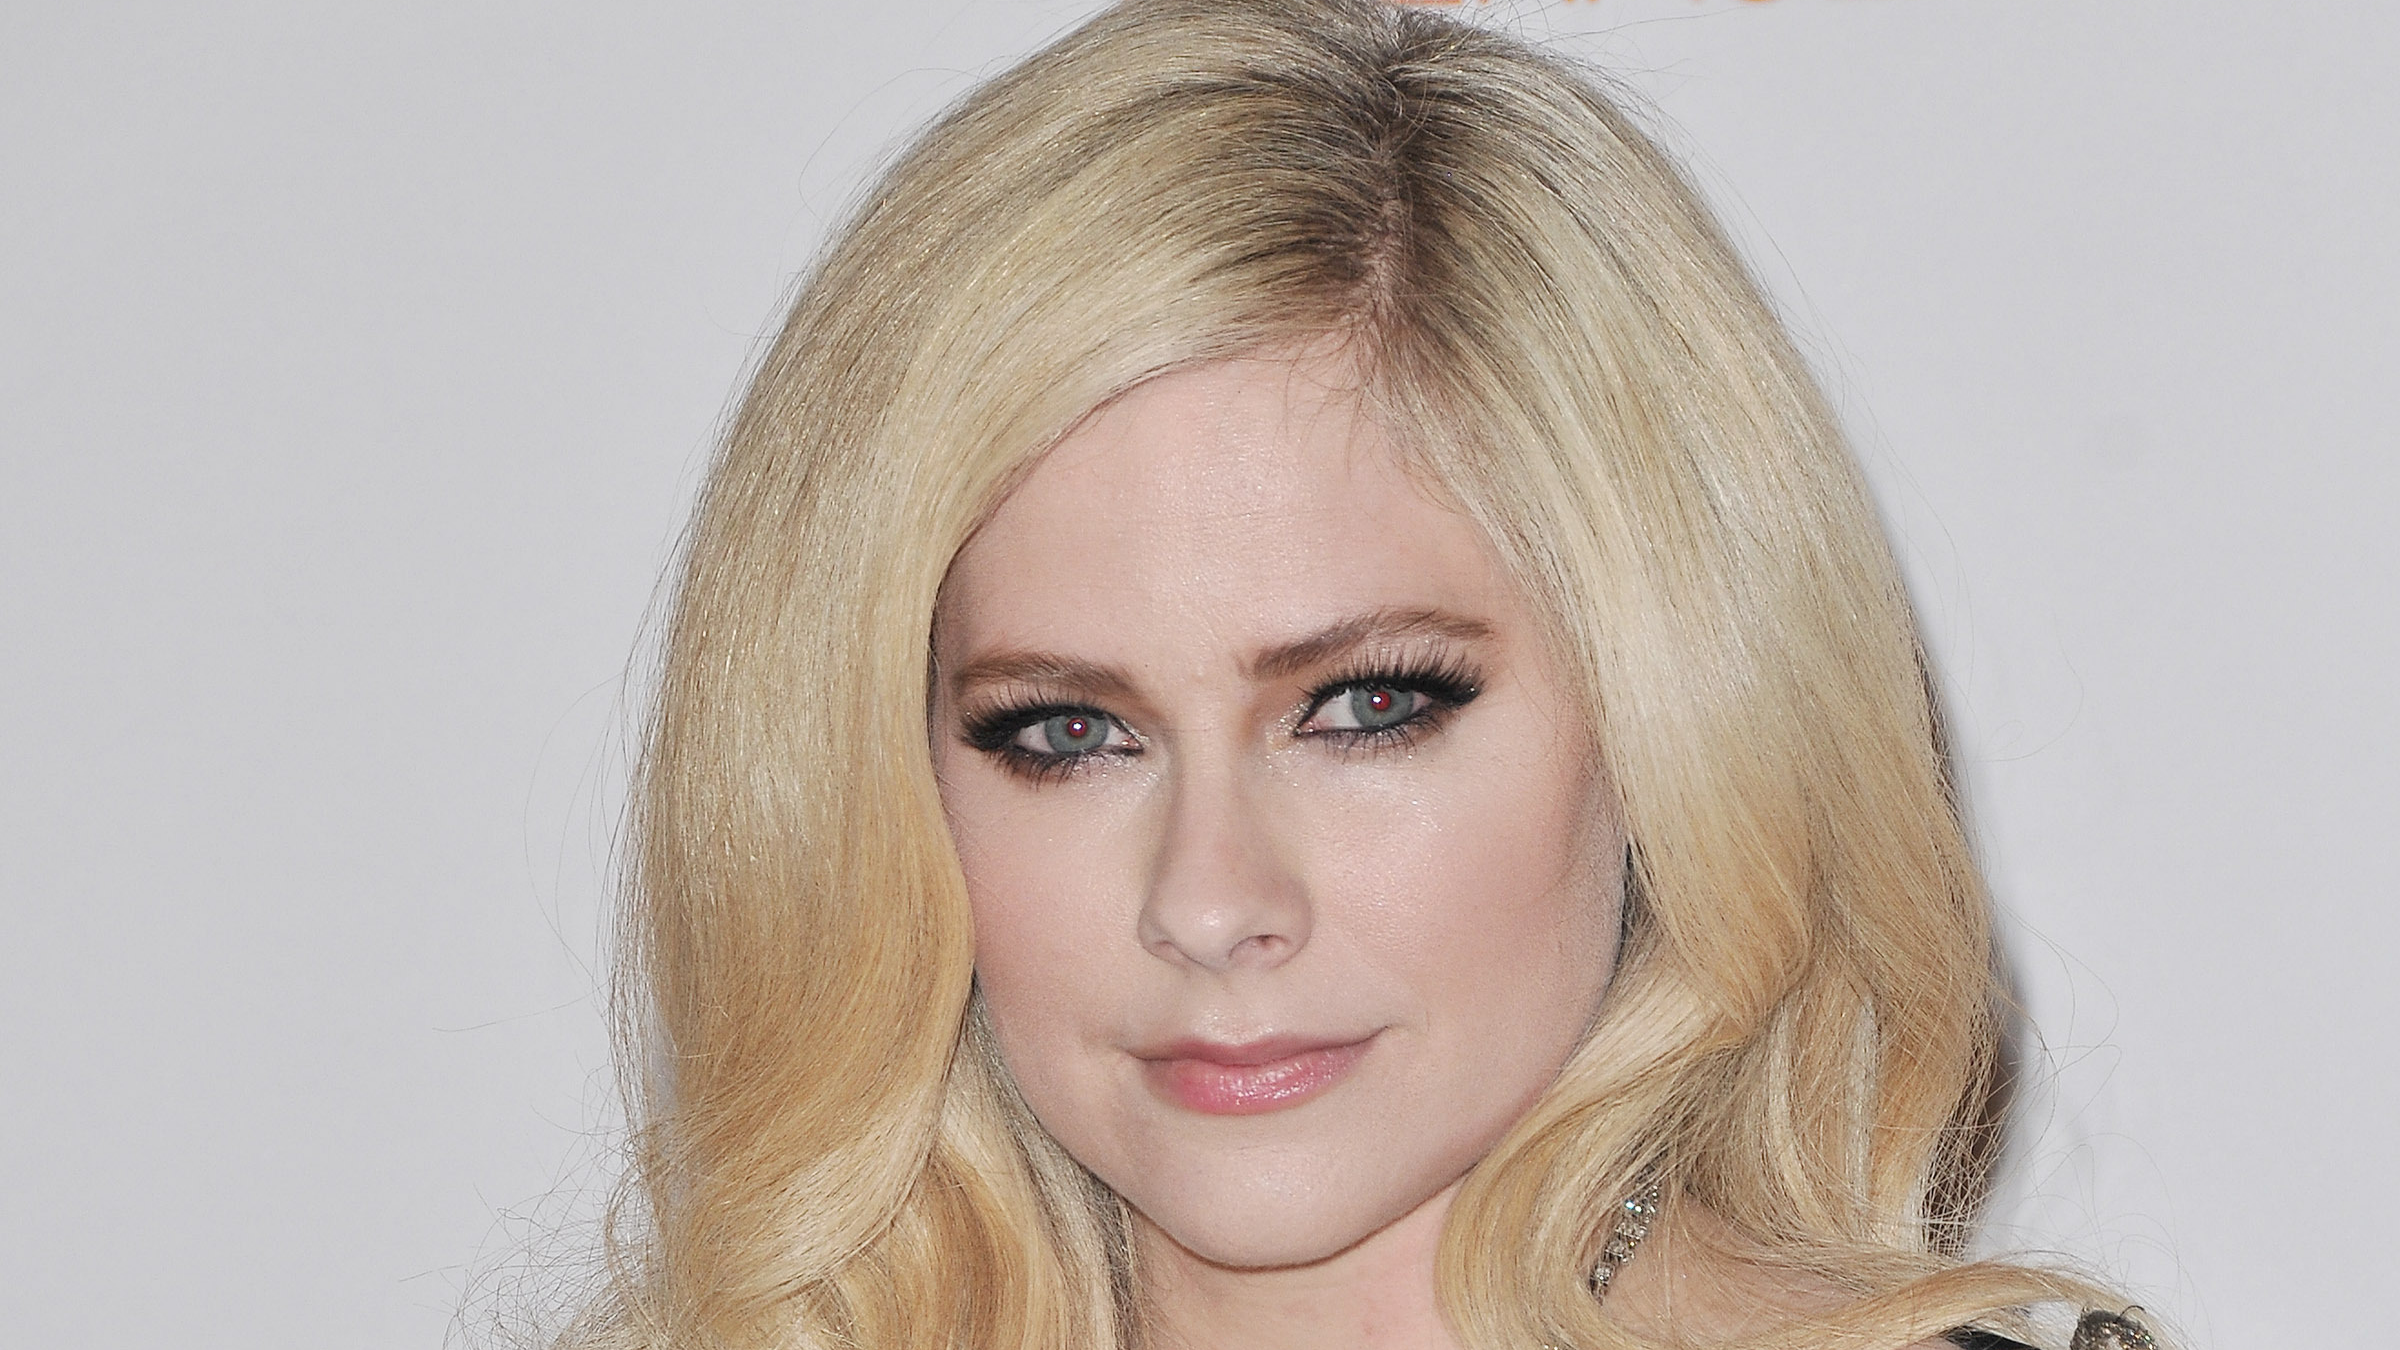 Avril Lavigne Addresses Conpiracy Theory She Died in 2003